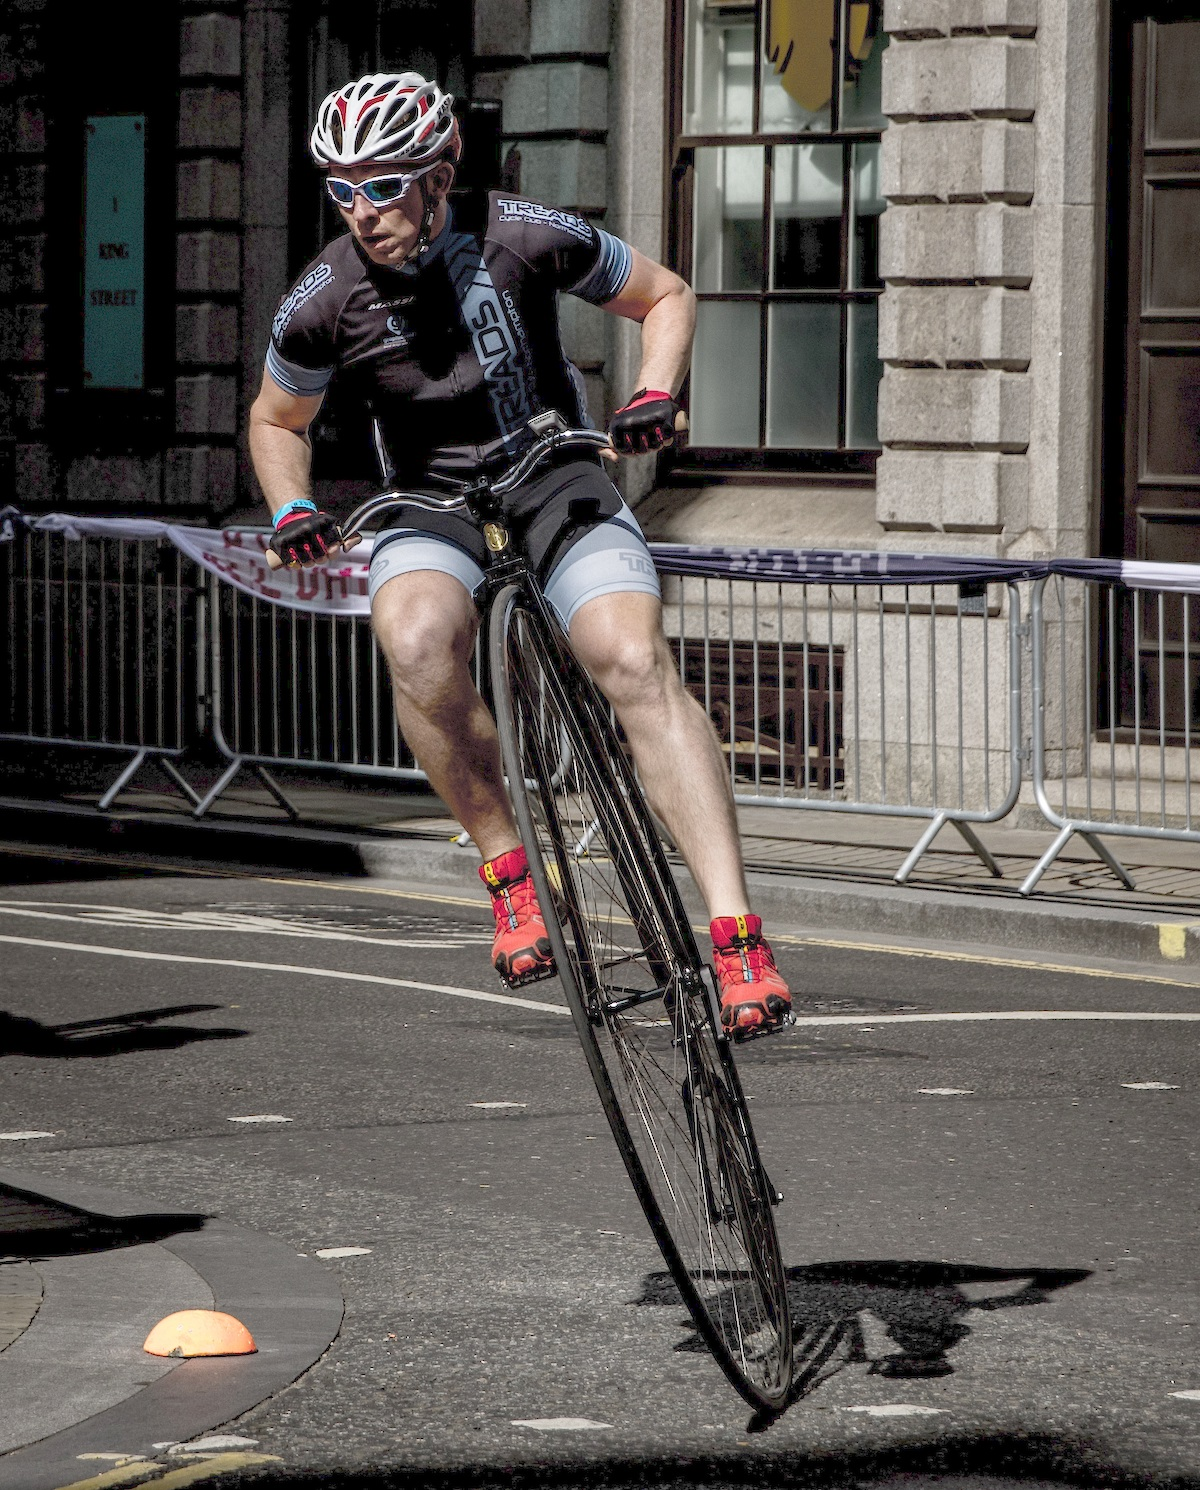 163 1 300 Raised On Penny Farthing Cycle Challenge East